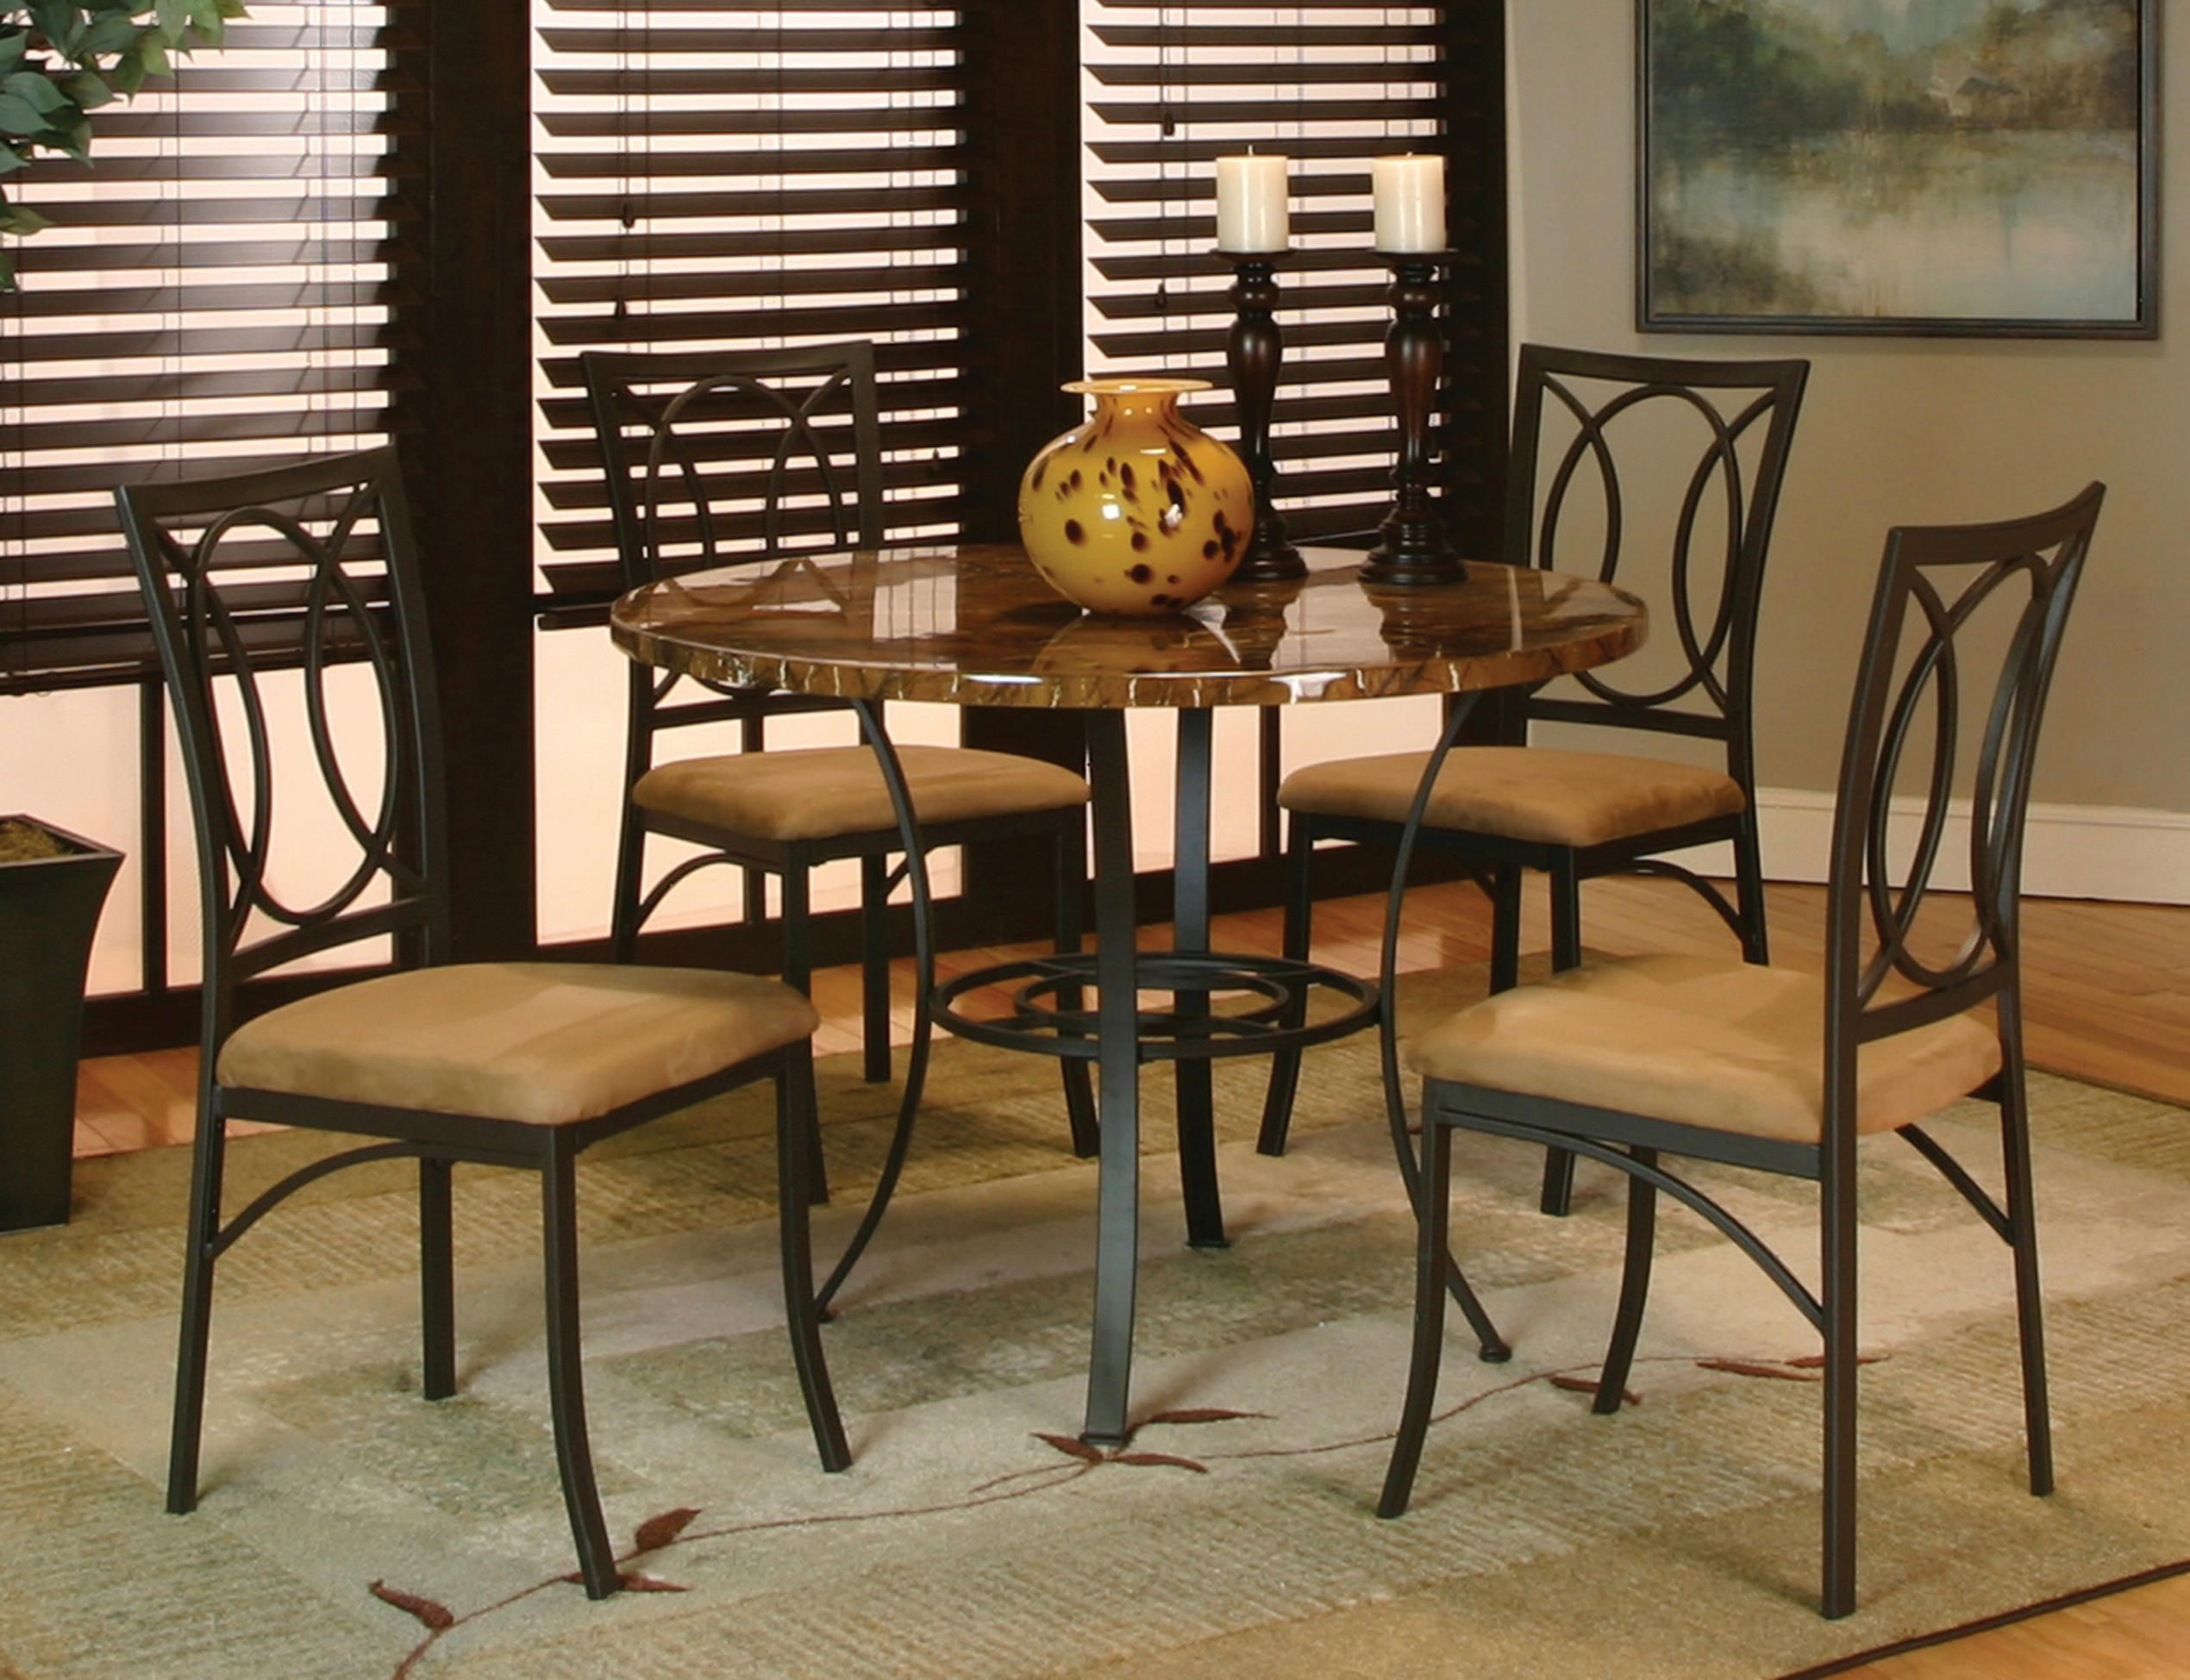 Kaden 5 Piece Dining Set This Very Attractive Features A 42 Round Faux Marble Table Top In Caramel Black Wrought Iron Base And Well Scaled Chairs